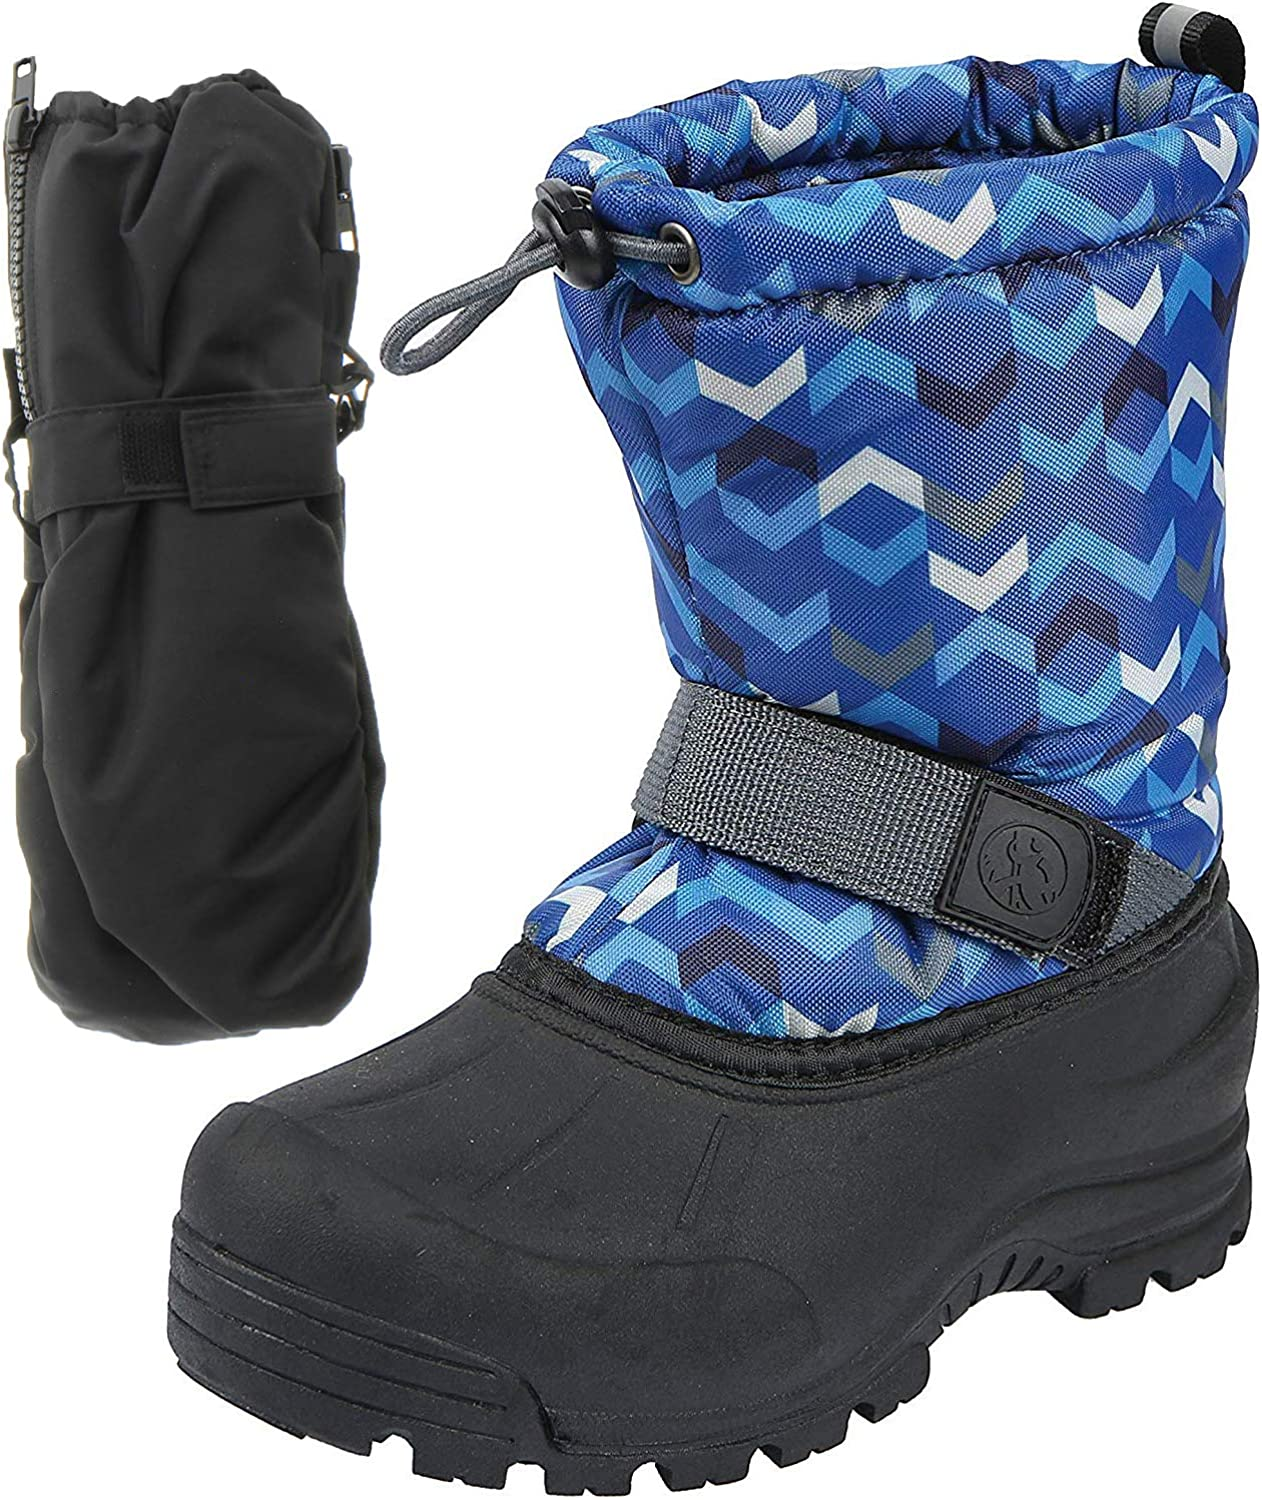 Nashville-Davidson Mall Northside Frosty Winter Snow Max 63% OFF Boots with Boys for Girls Matching